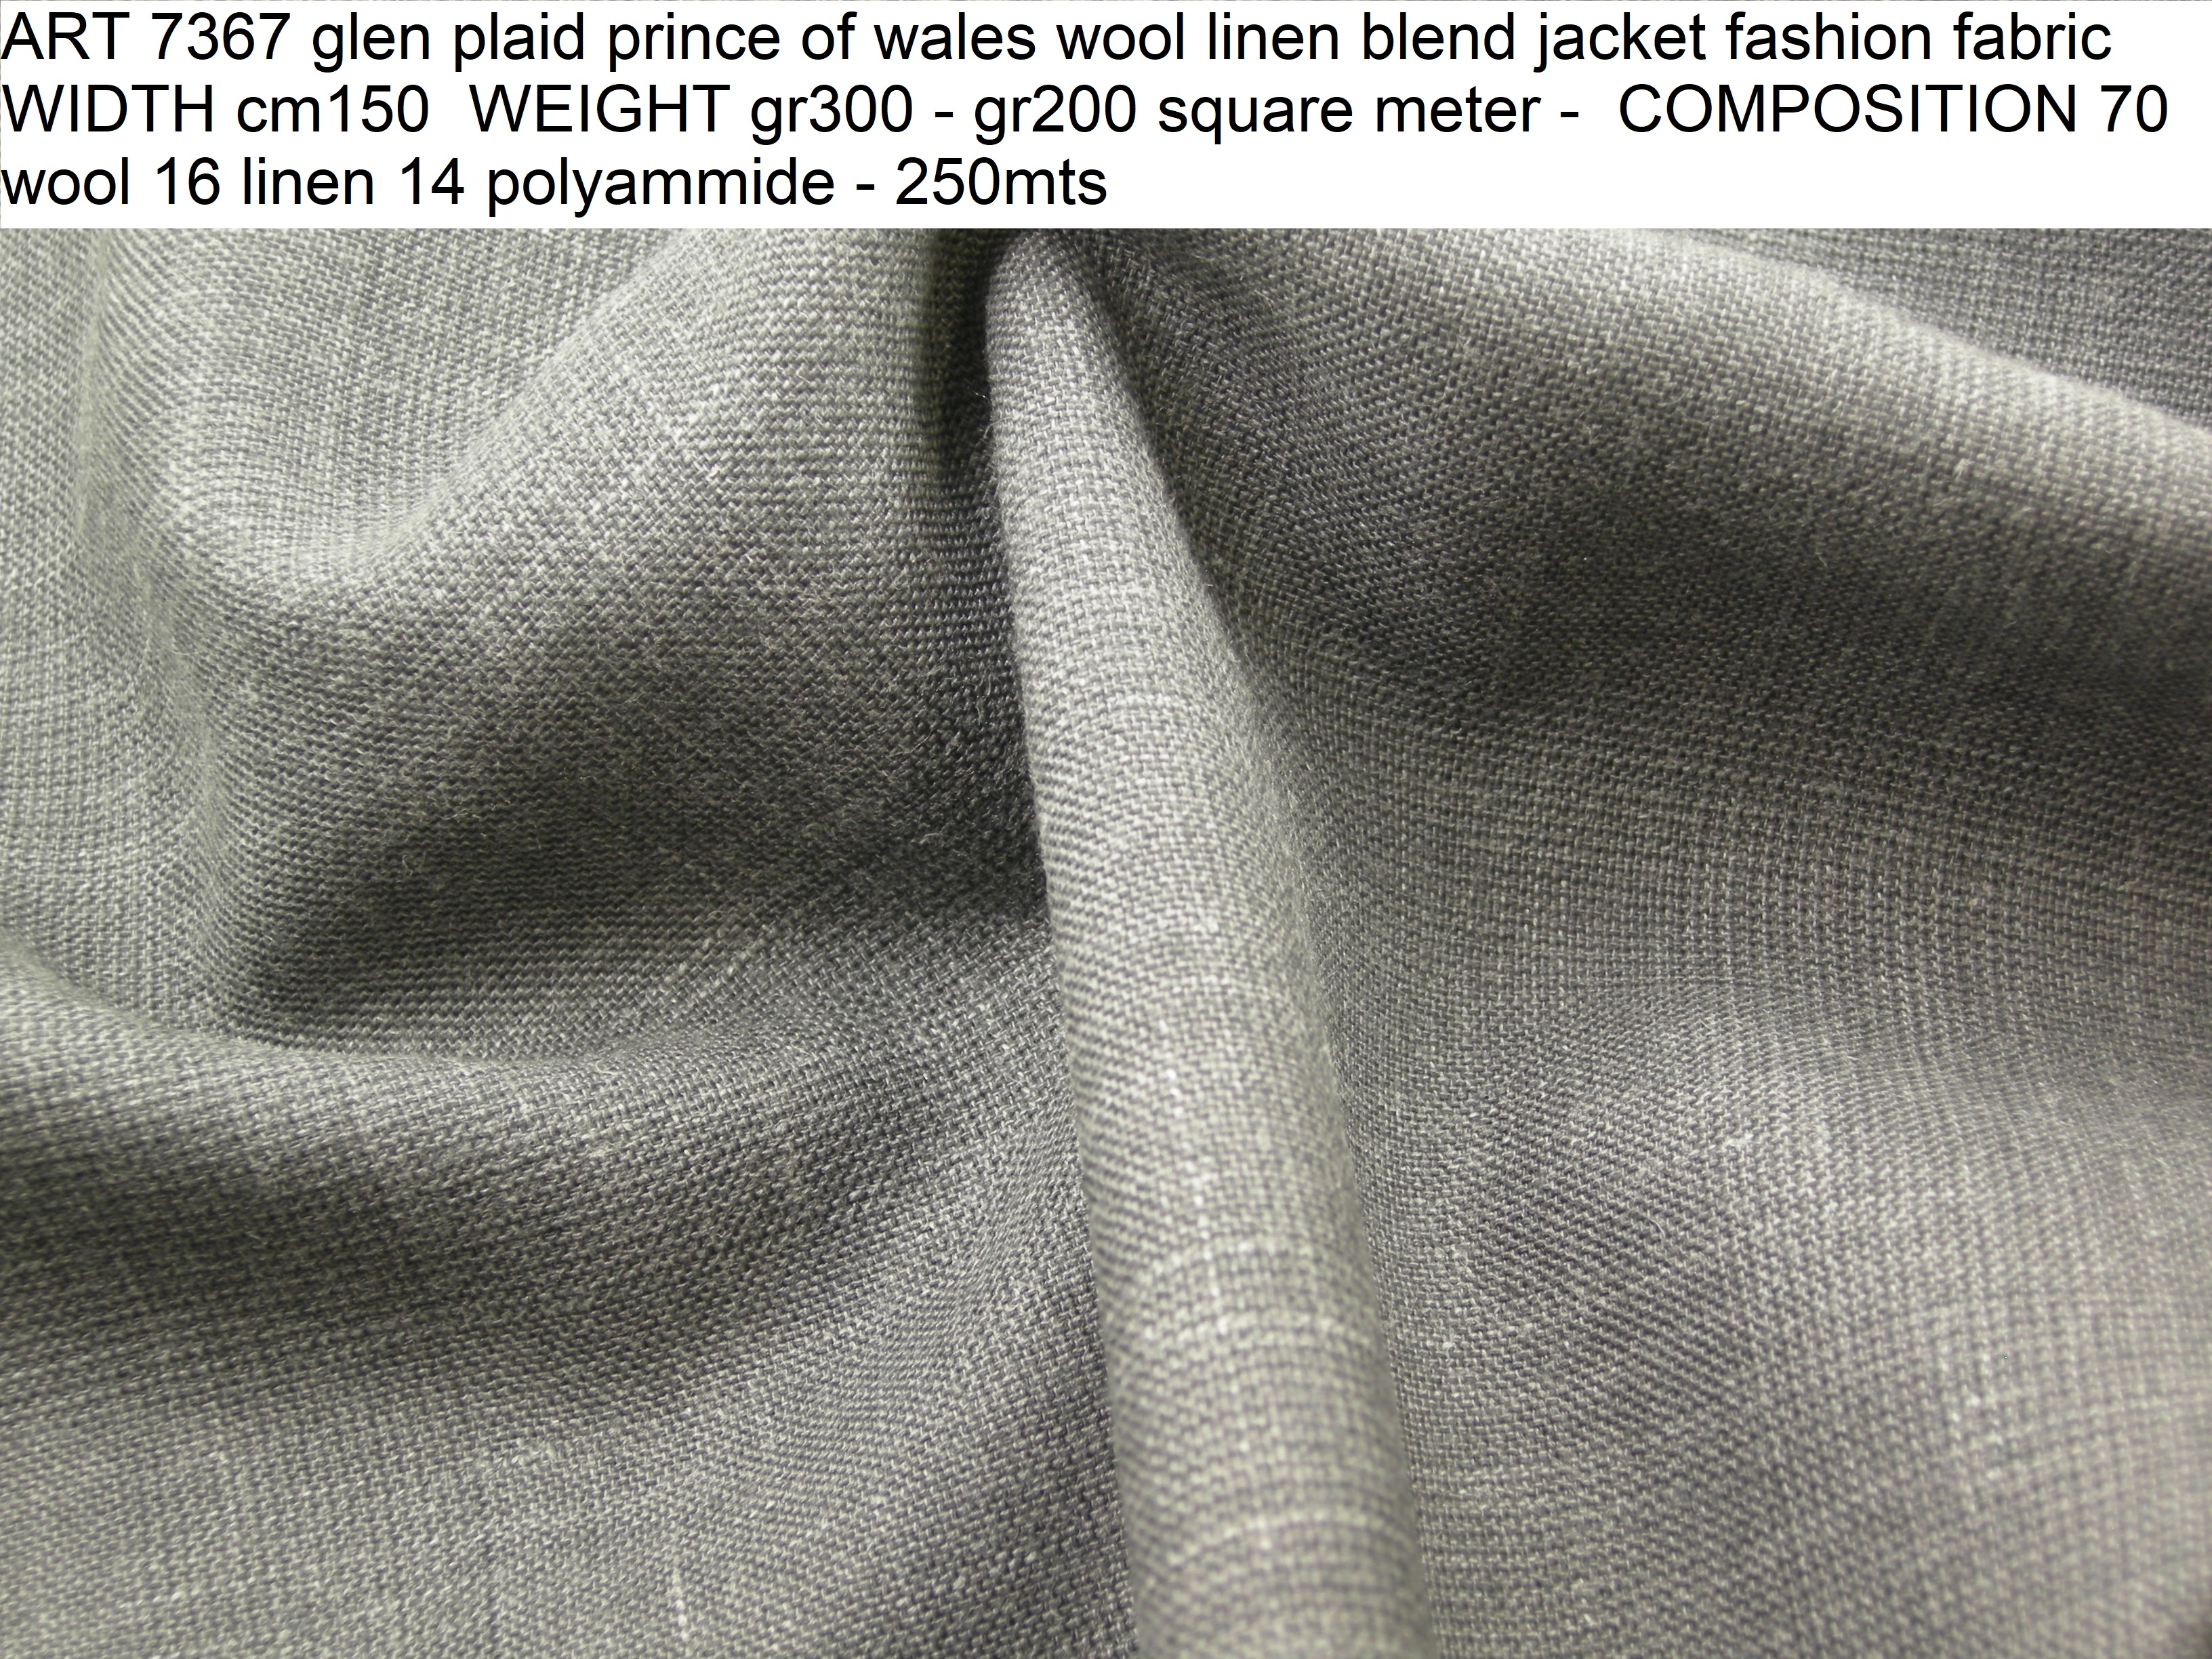 ART 7367 glen plaid prince of wales wool linen blend jacket fashion fabric WIDTH cm150 WEIGHT gr300 - gr200 square meter - COMPOSITION 70 wool 16 linen 14 polyammide - 250mts